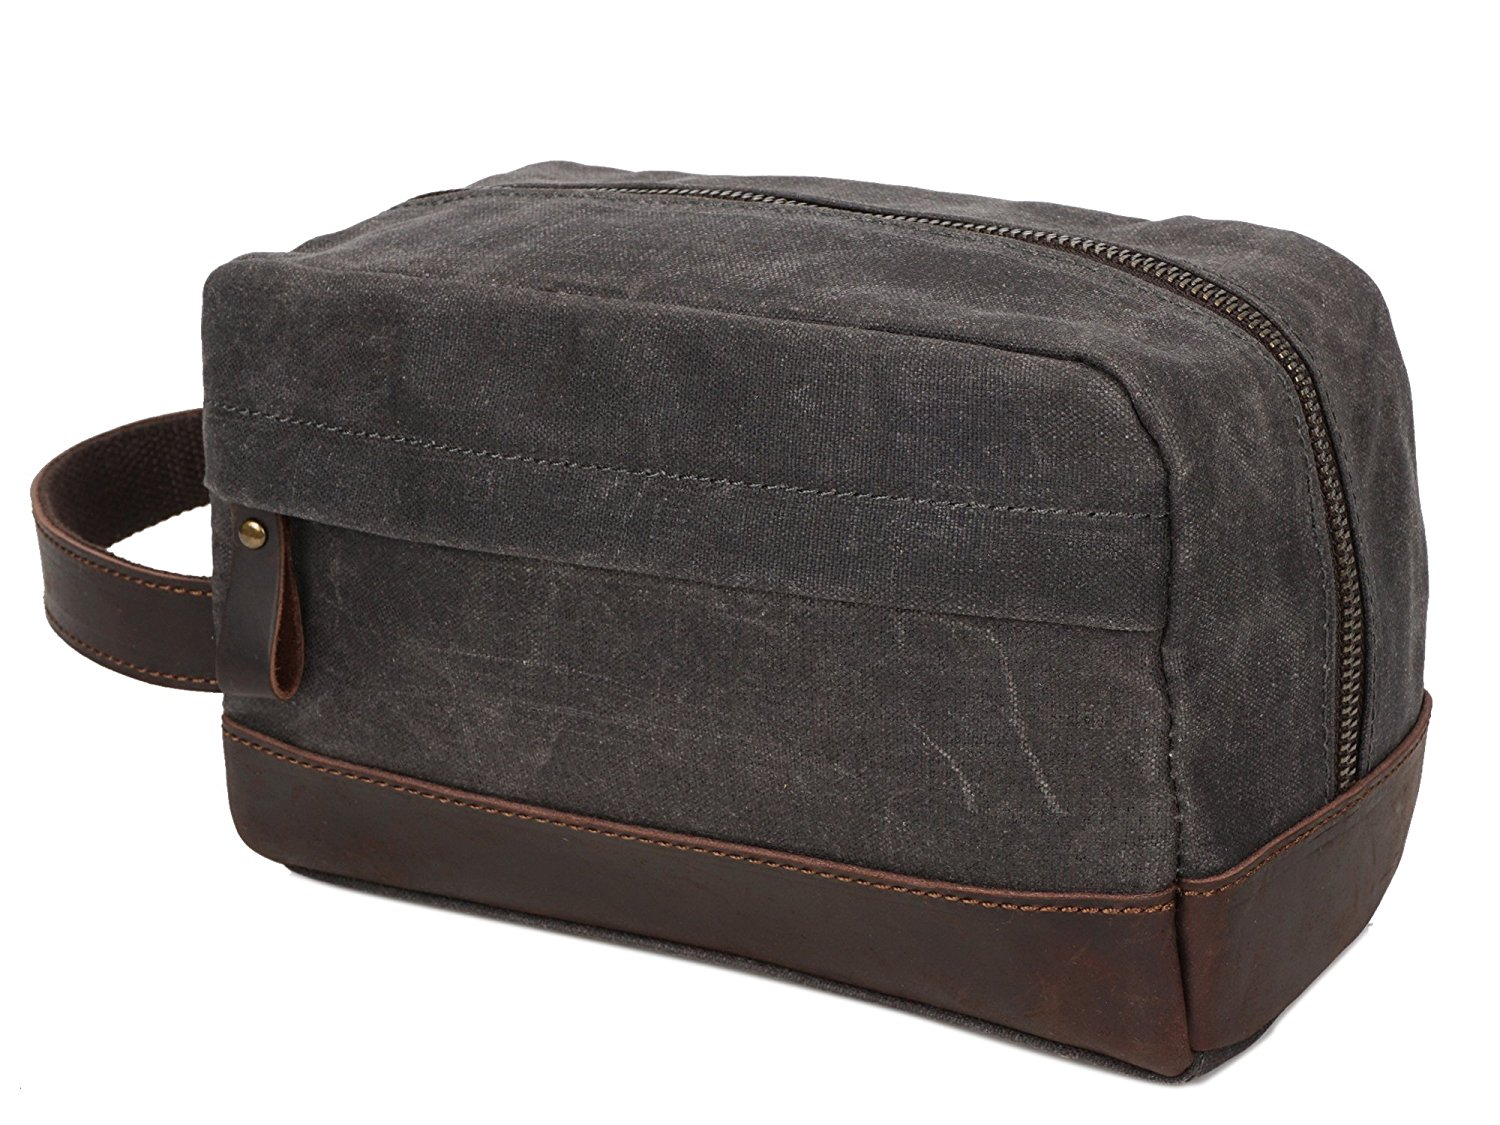 ee9012983ff6 Cheap Vintage Leather Toiletry Bag, find Vintage Leather Toiletry ...